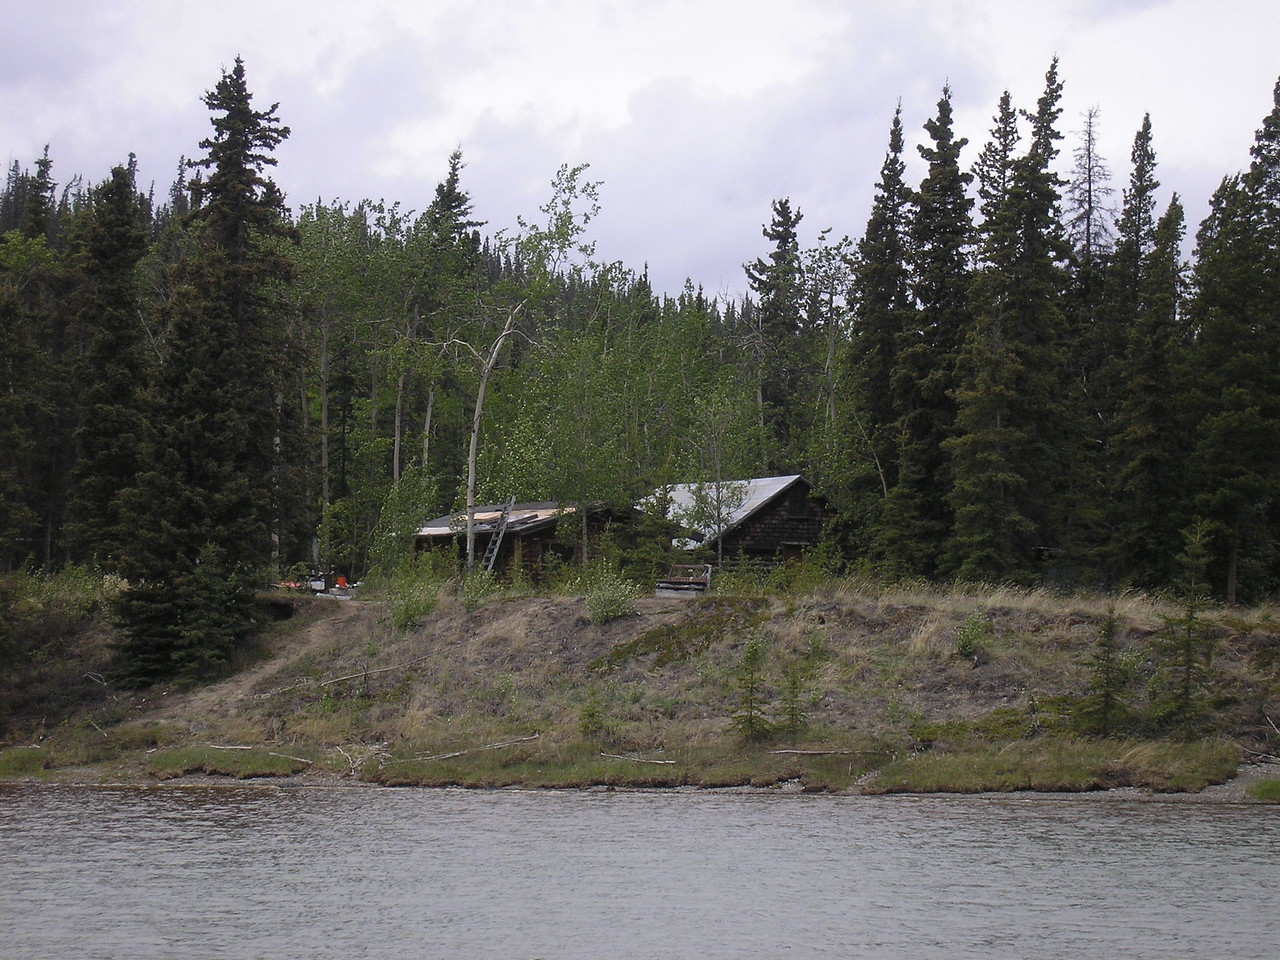 An old trappers cabin on the river.